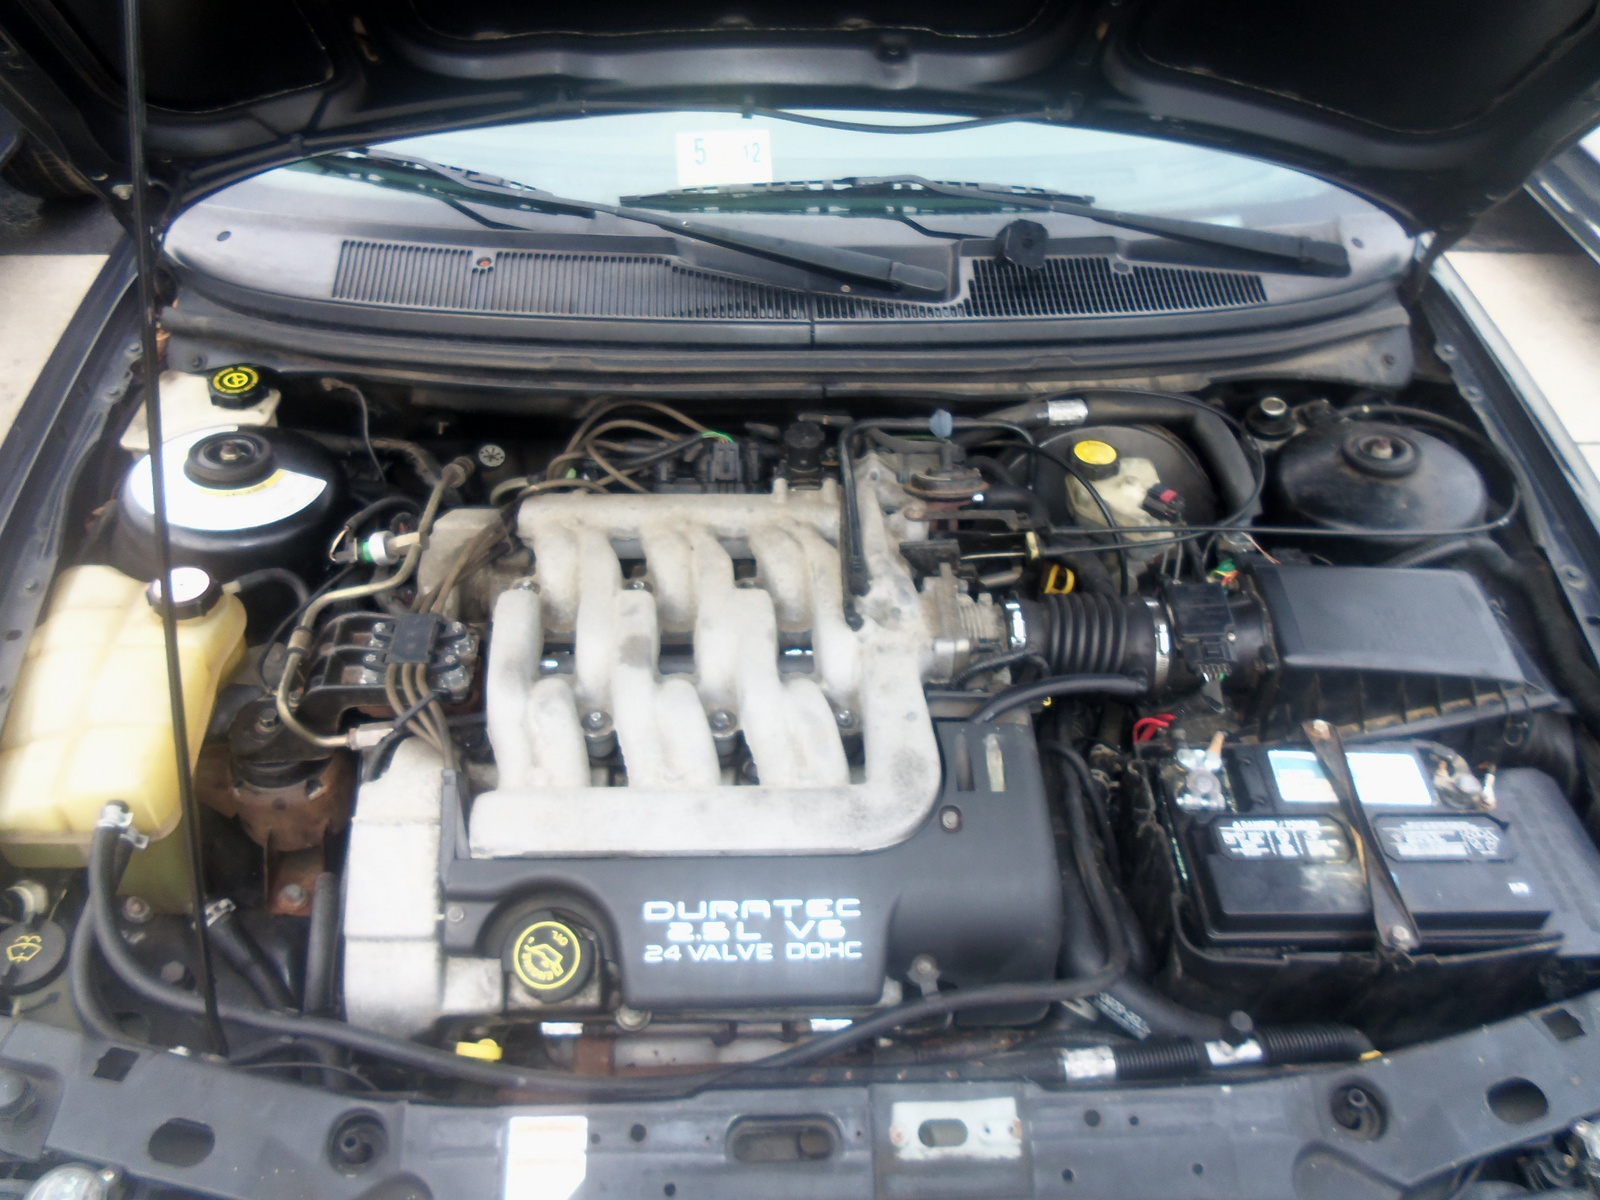 Ford Contour engine #1